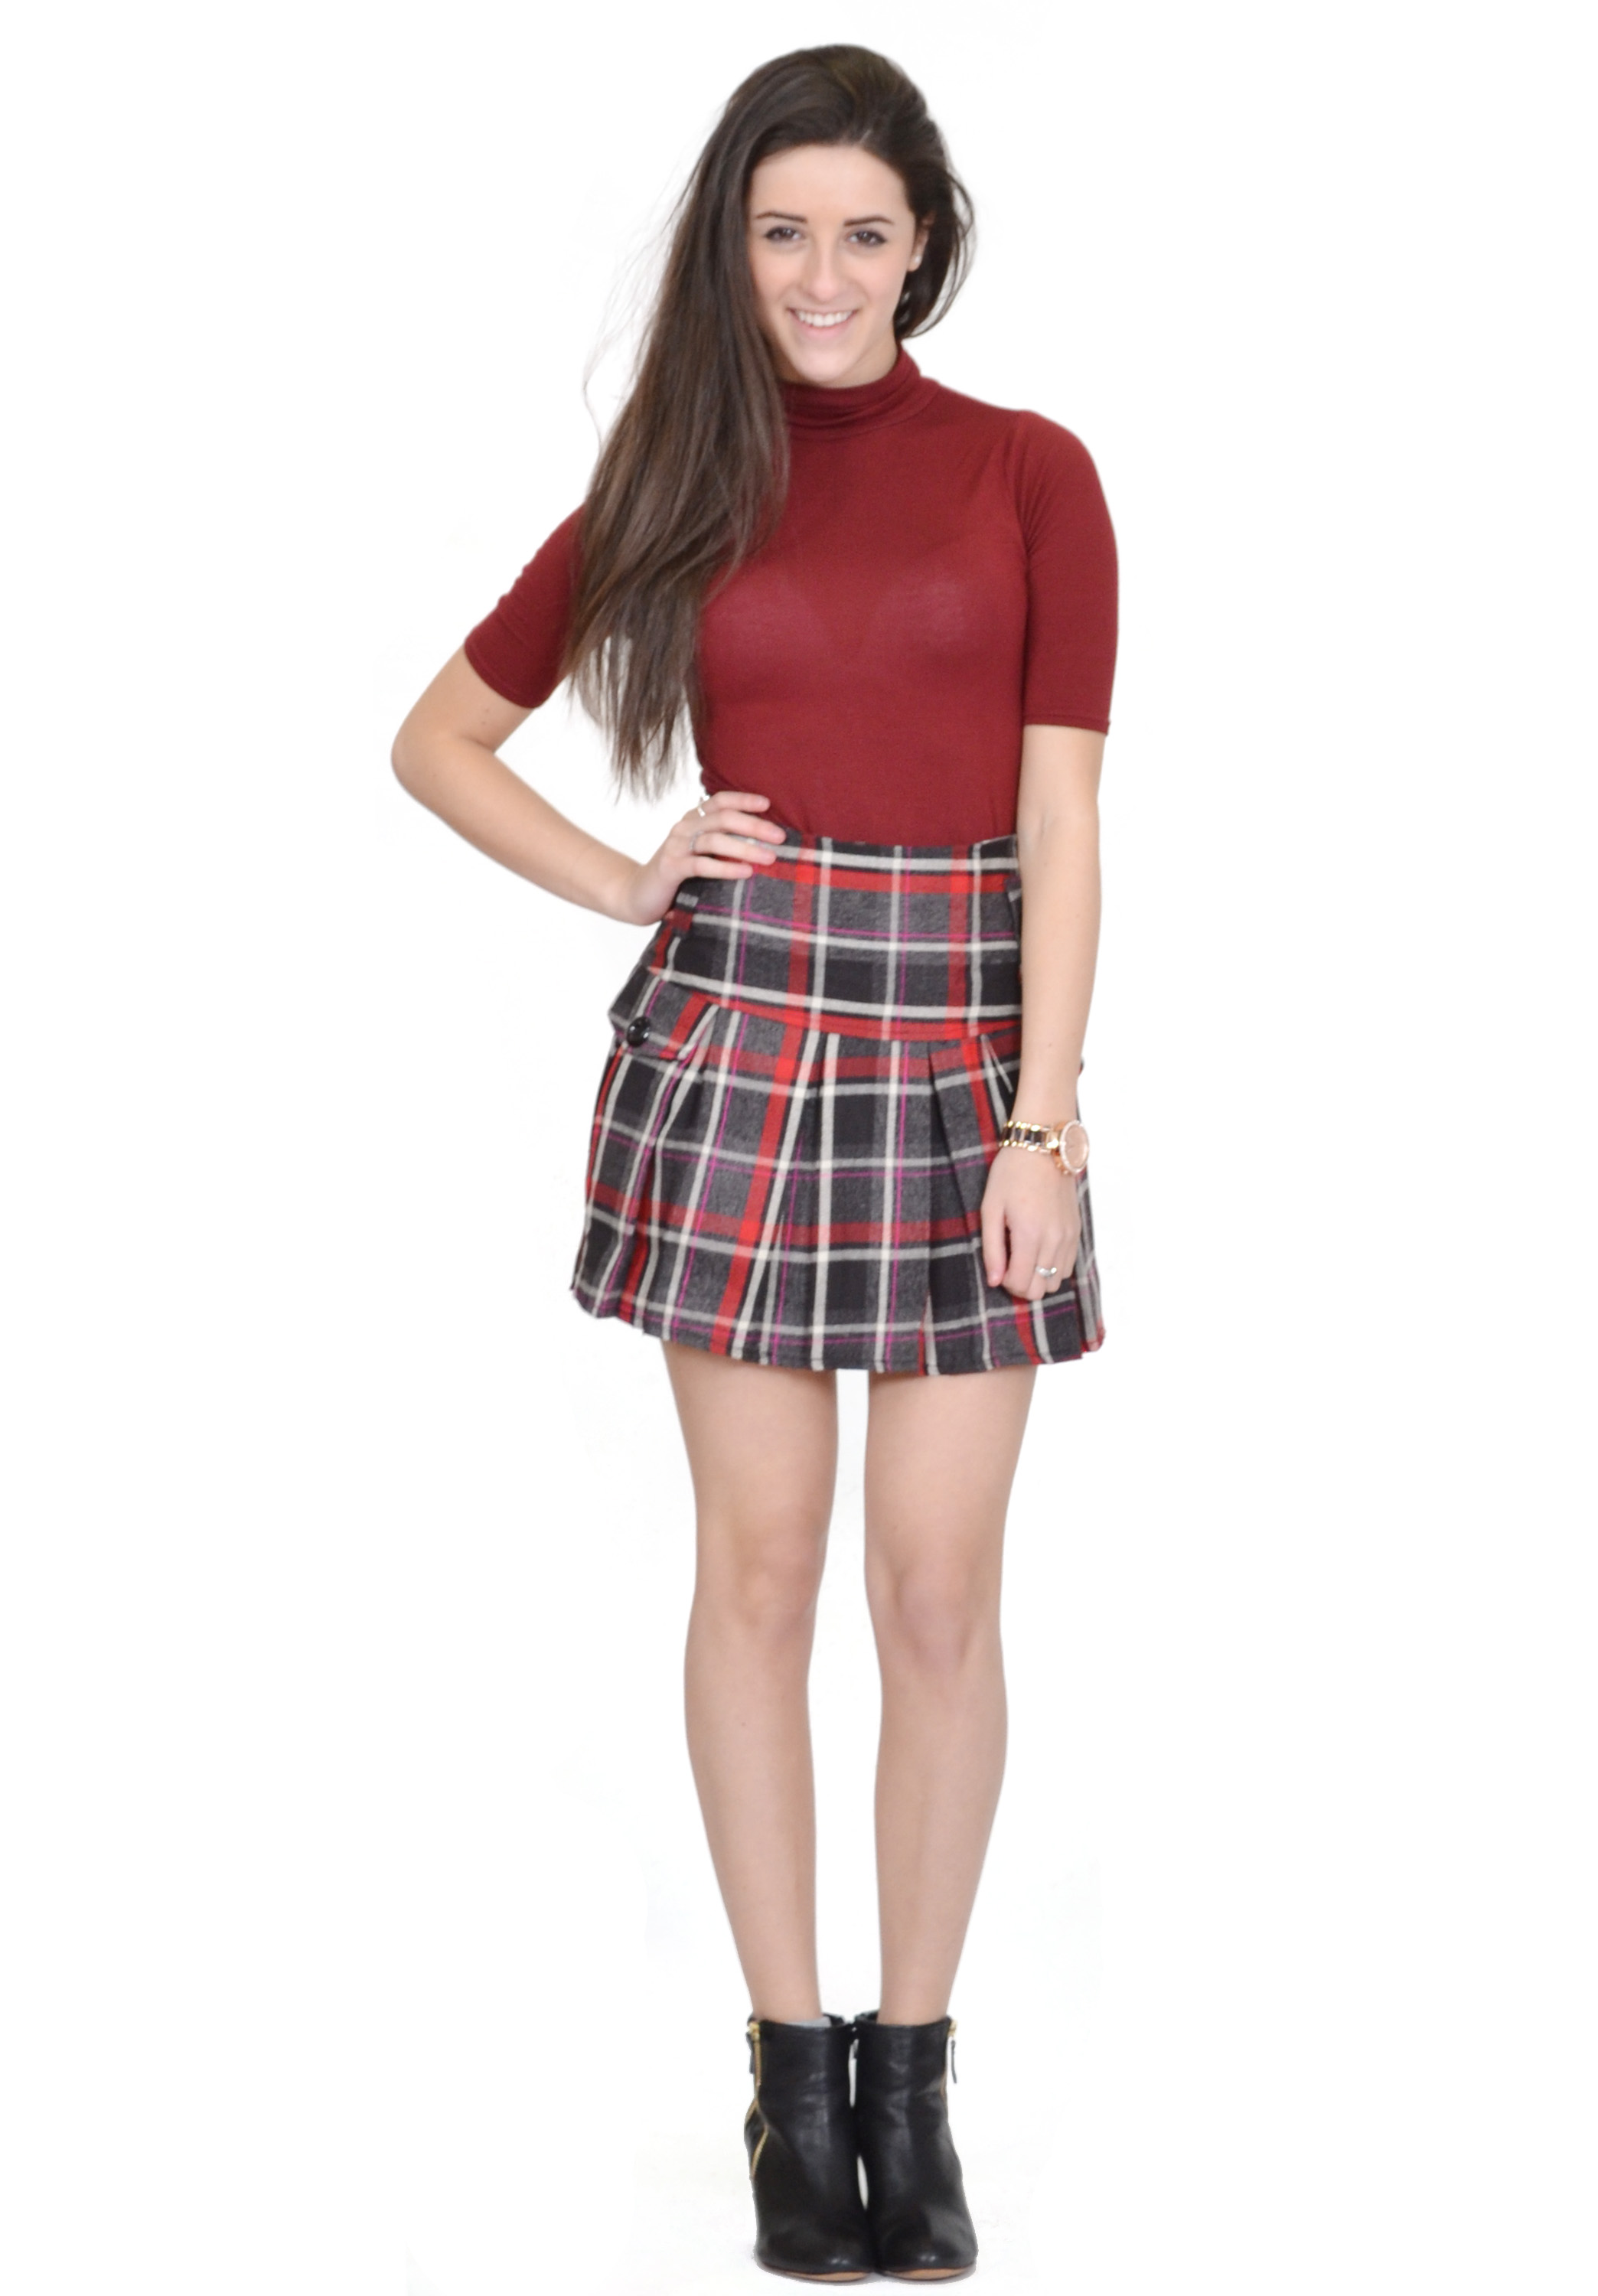 A Line Skirt Mini Skirt - High Waisted Skirts Skater Skirt - Summer Skirts Women Short Skirt - Skirts Women Pleated £ - £ KK Fashion Lines Ladies Tartan Box Pleated Skirt.